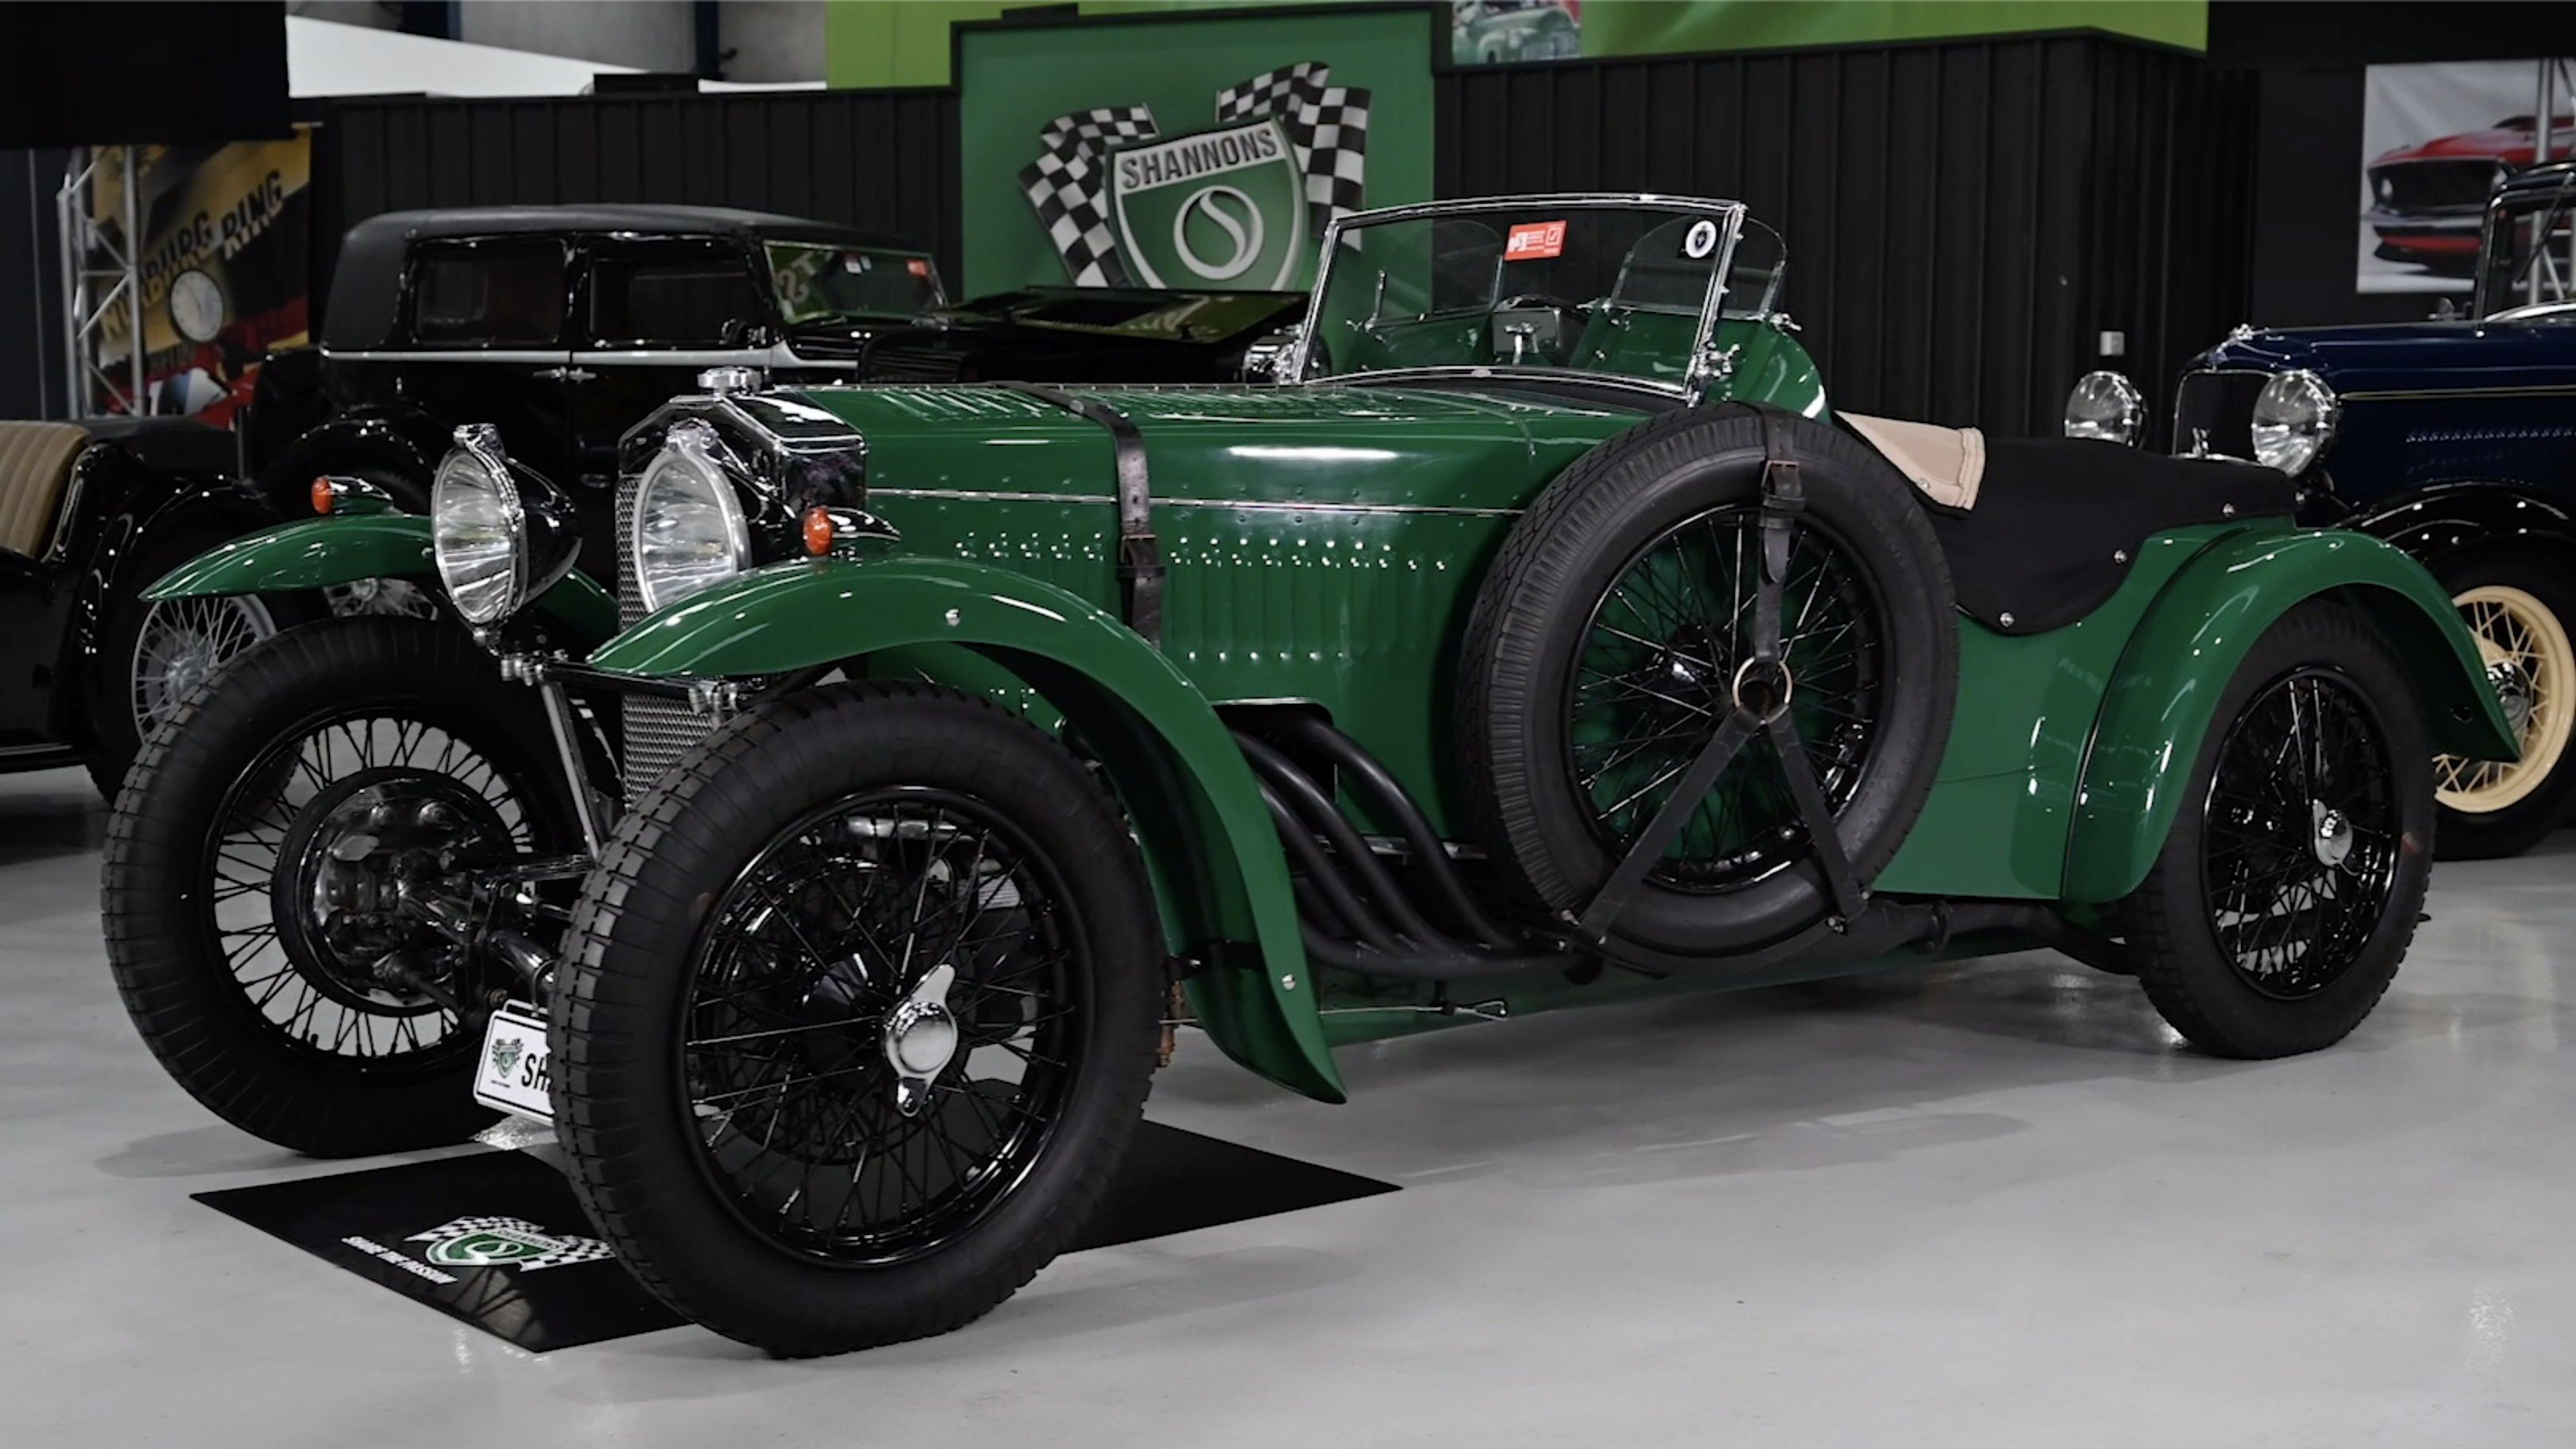 c1932 Frazer Nash Ulster 2-Seater - 2020 Shannons Spring Timed Online Auction